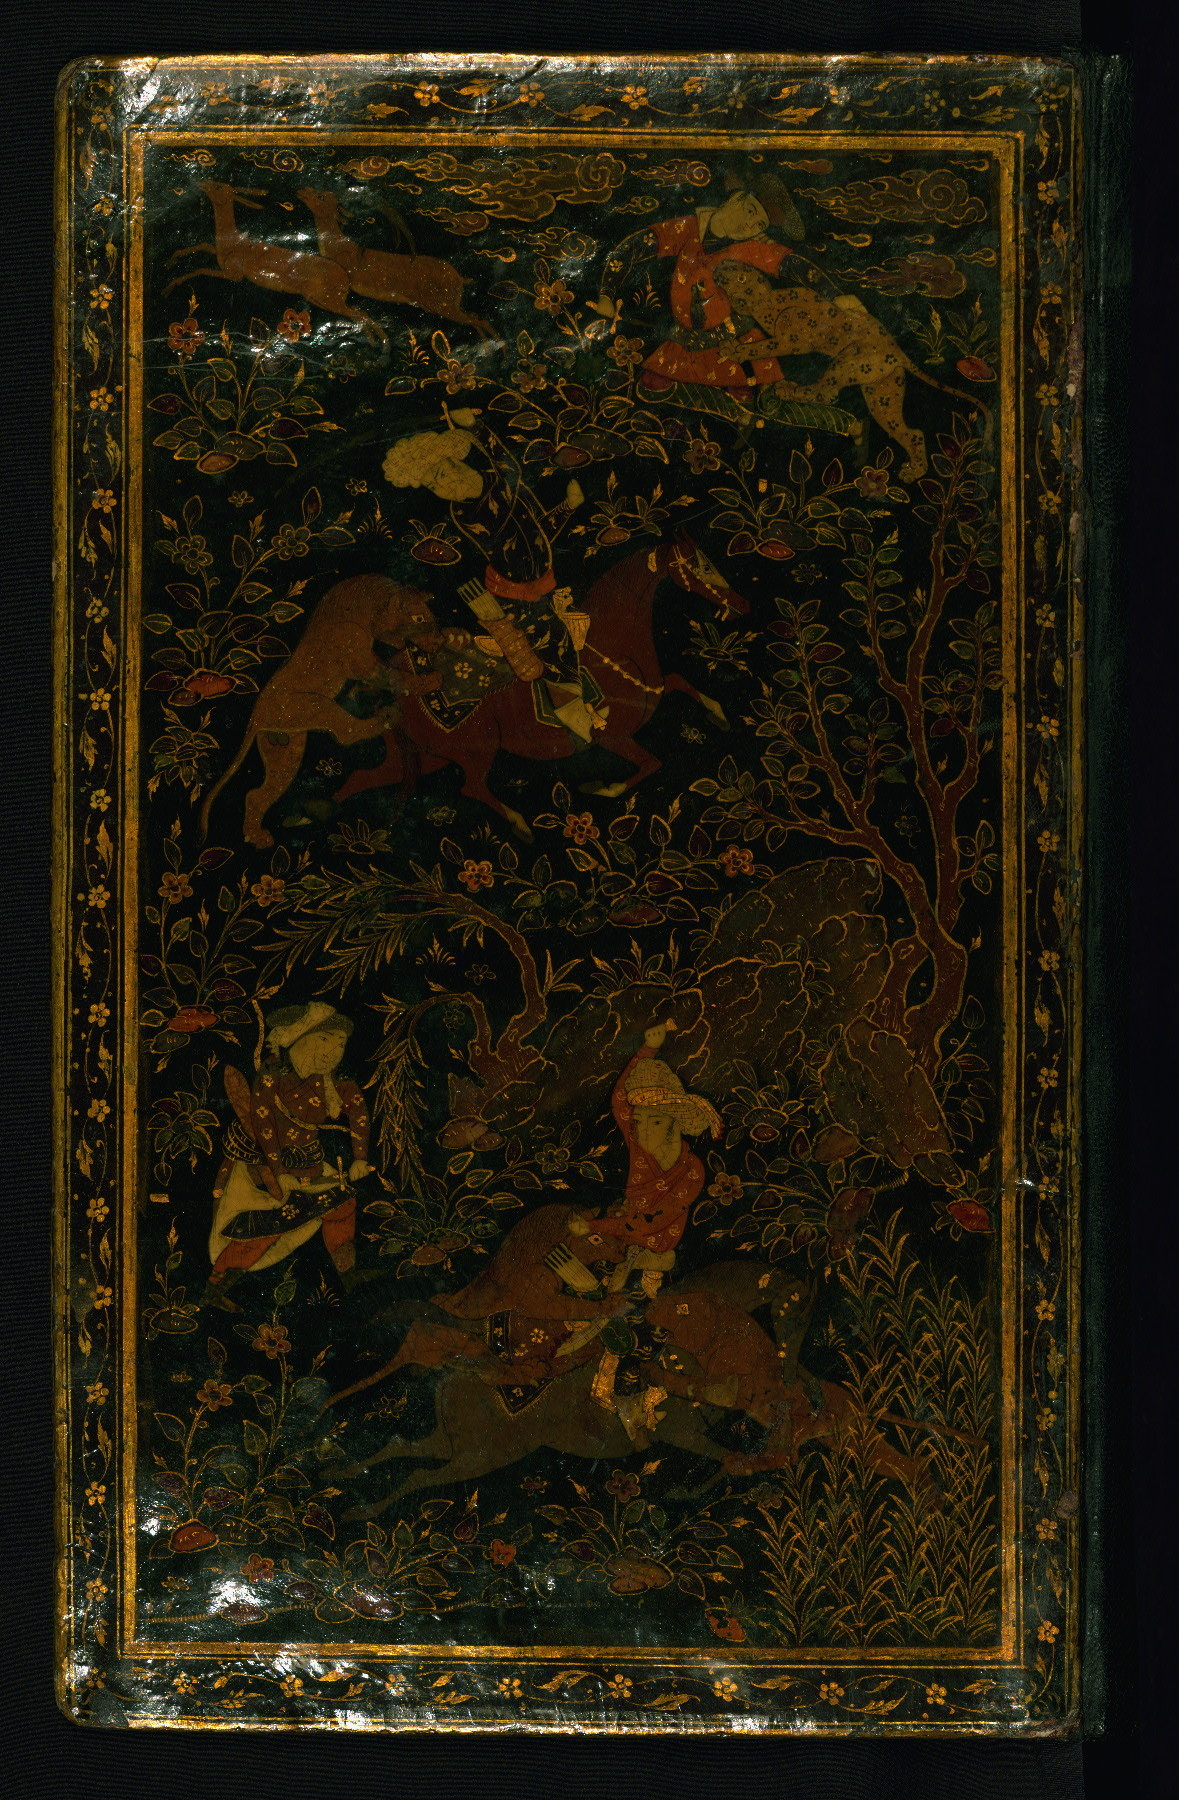 Lacquer binding  Label: This Safavid lacquer binding is decorated with hunting scenes and landscape motifs. It is attributable to the late tenth century                      AH / sixteenth CE or eleventh century AH / seventeenth CE.   This is an illuminated and illustrated Safavid copy of the first collection of poetry (Dīvān-i avval or Fātiḥat al-shabāb)                   by Nūr al-Dīn Jāmī (d. 898 AH / 1492 CE).  http://www.thedigitalwalters.org/Data/WaltersManuscripts/html/W640/description.html